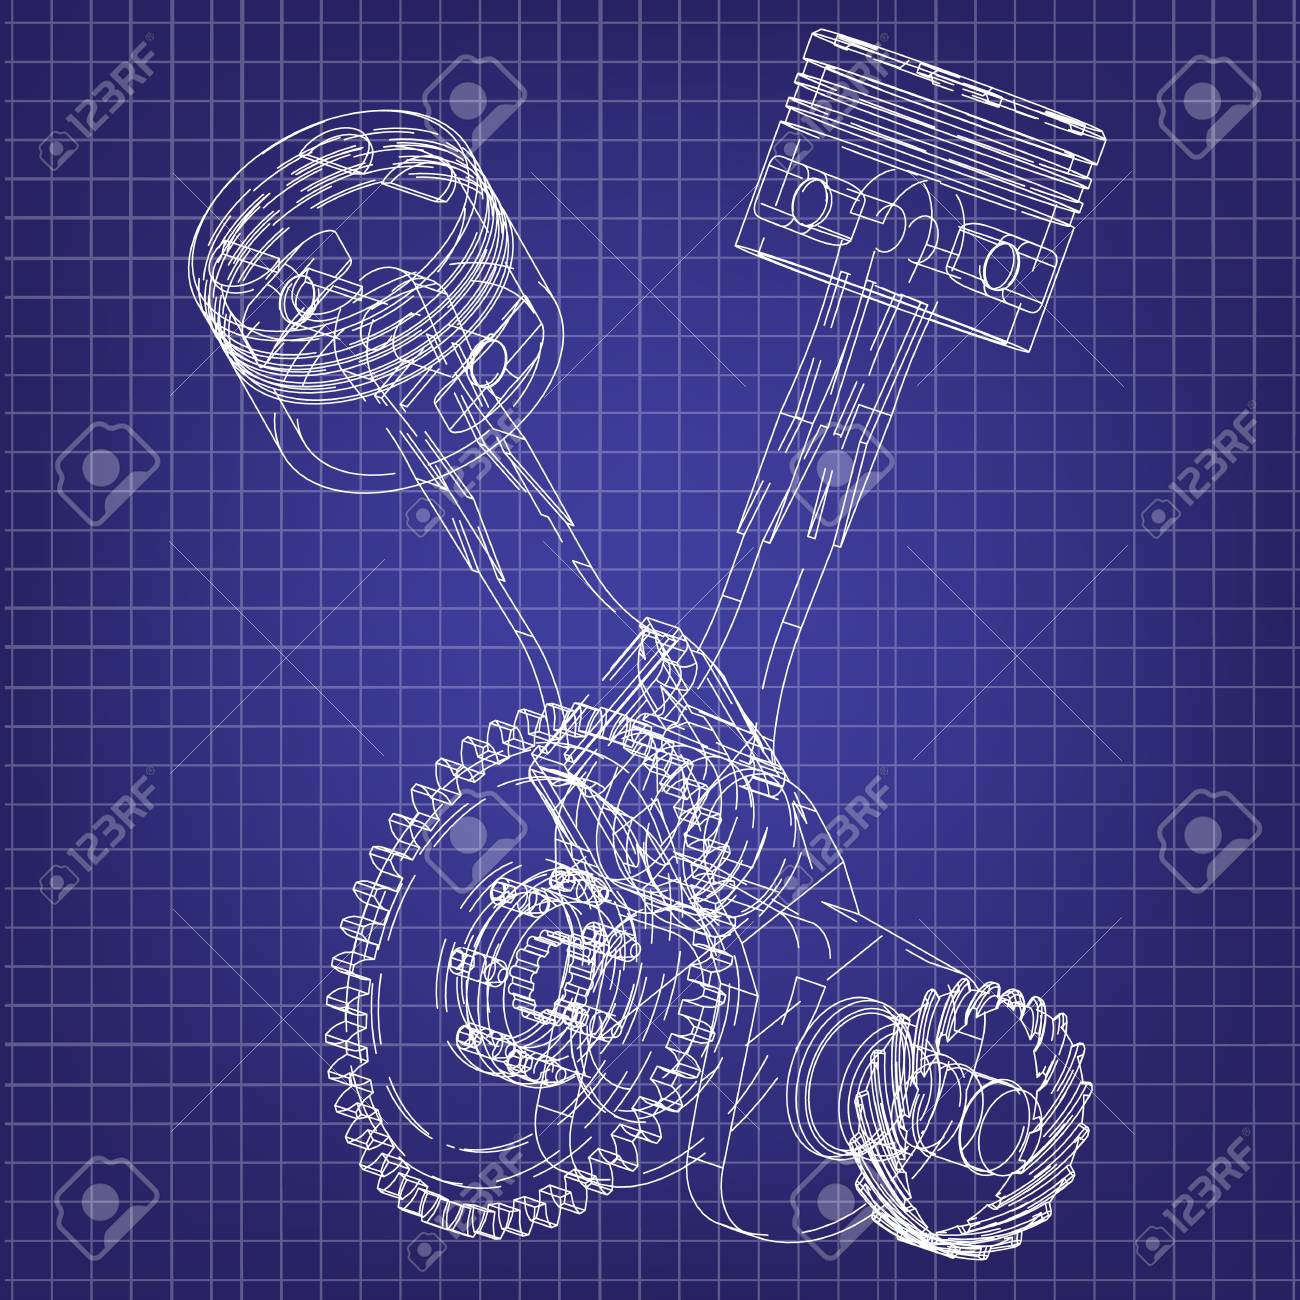 hight resolution of motorcycle engine on a blue background drawing stock vector 118029004